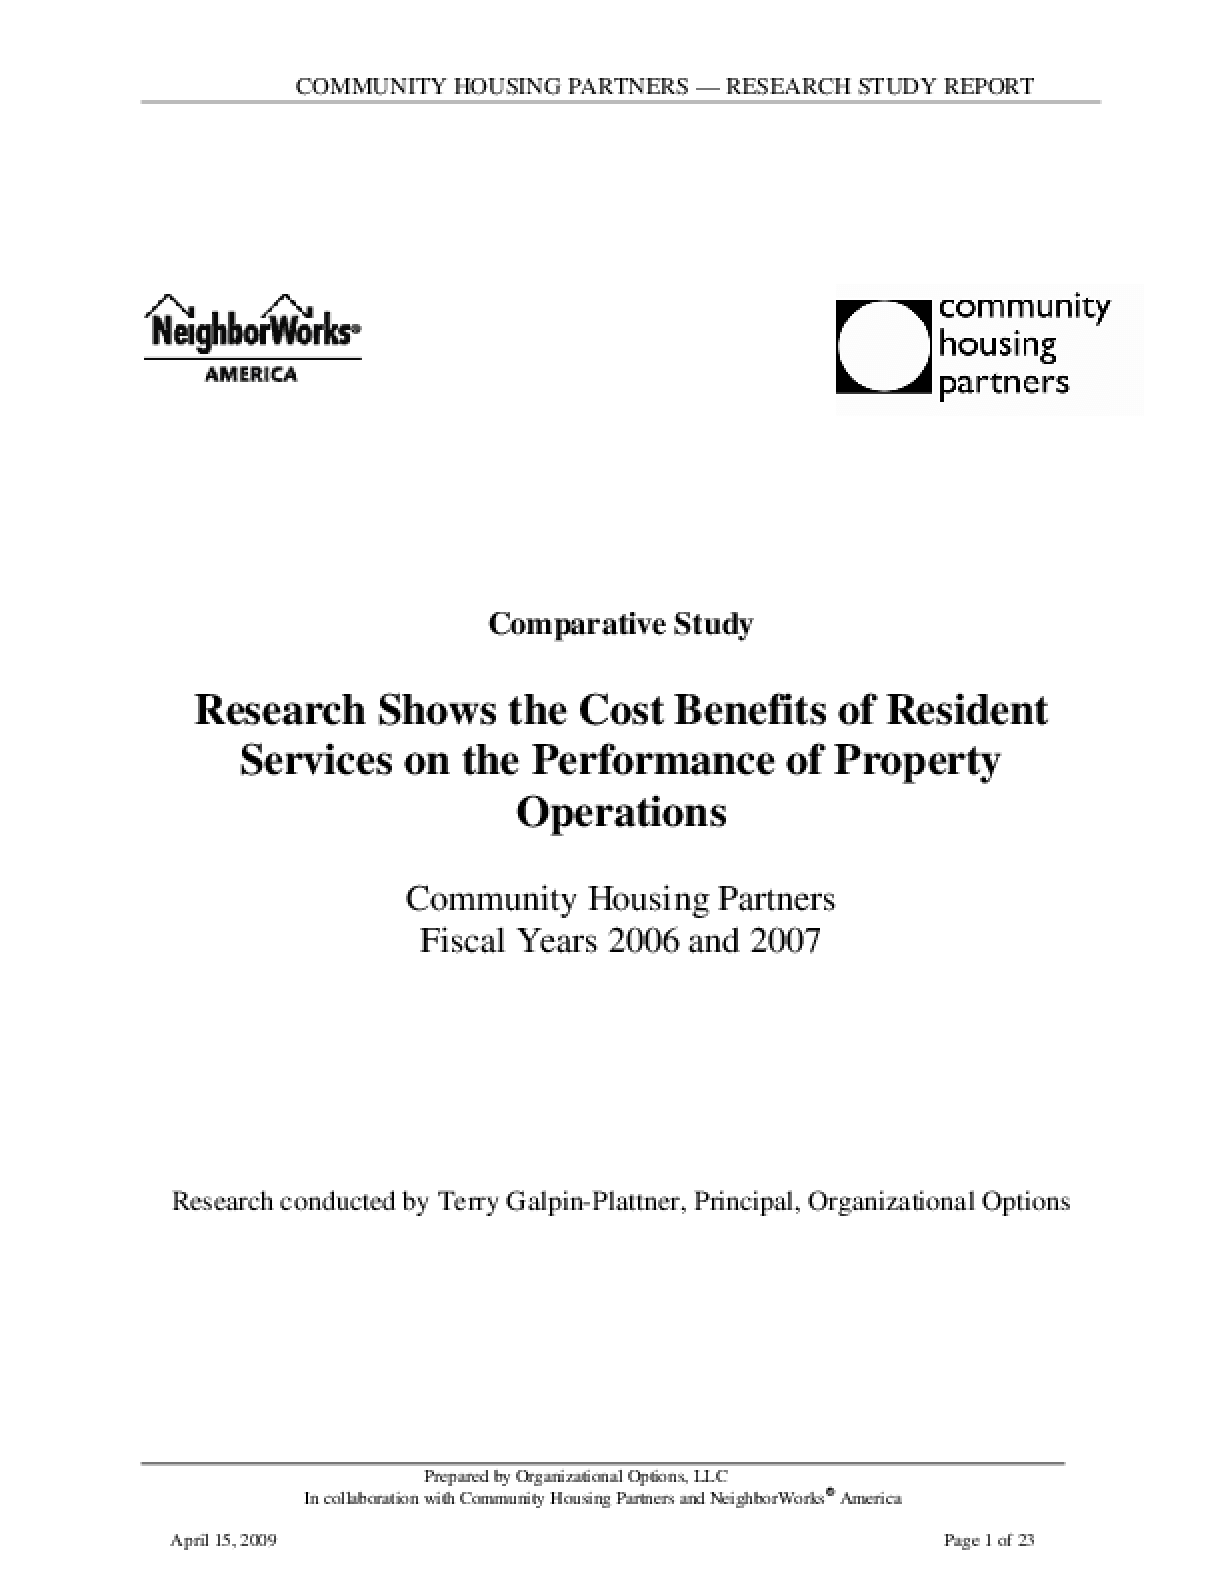 Research Shows the Cost Benefits of Resident Services on the Performance of Property Operations